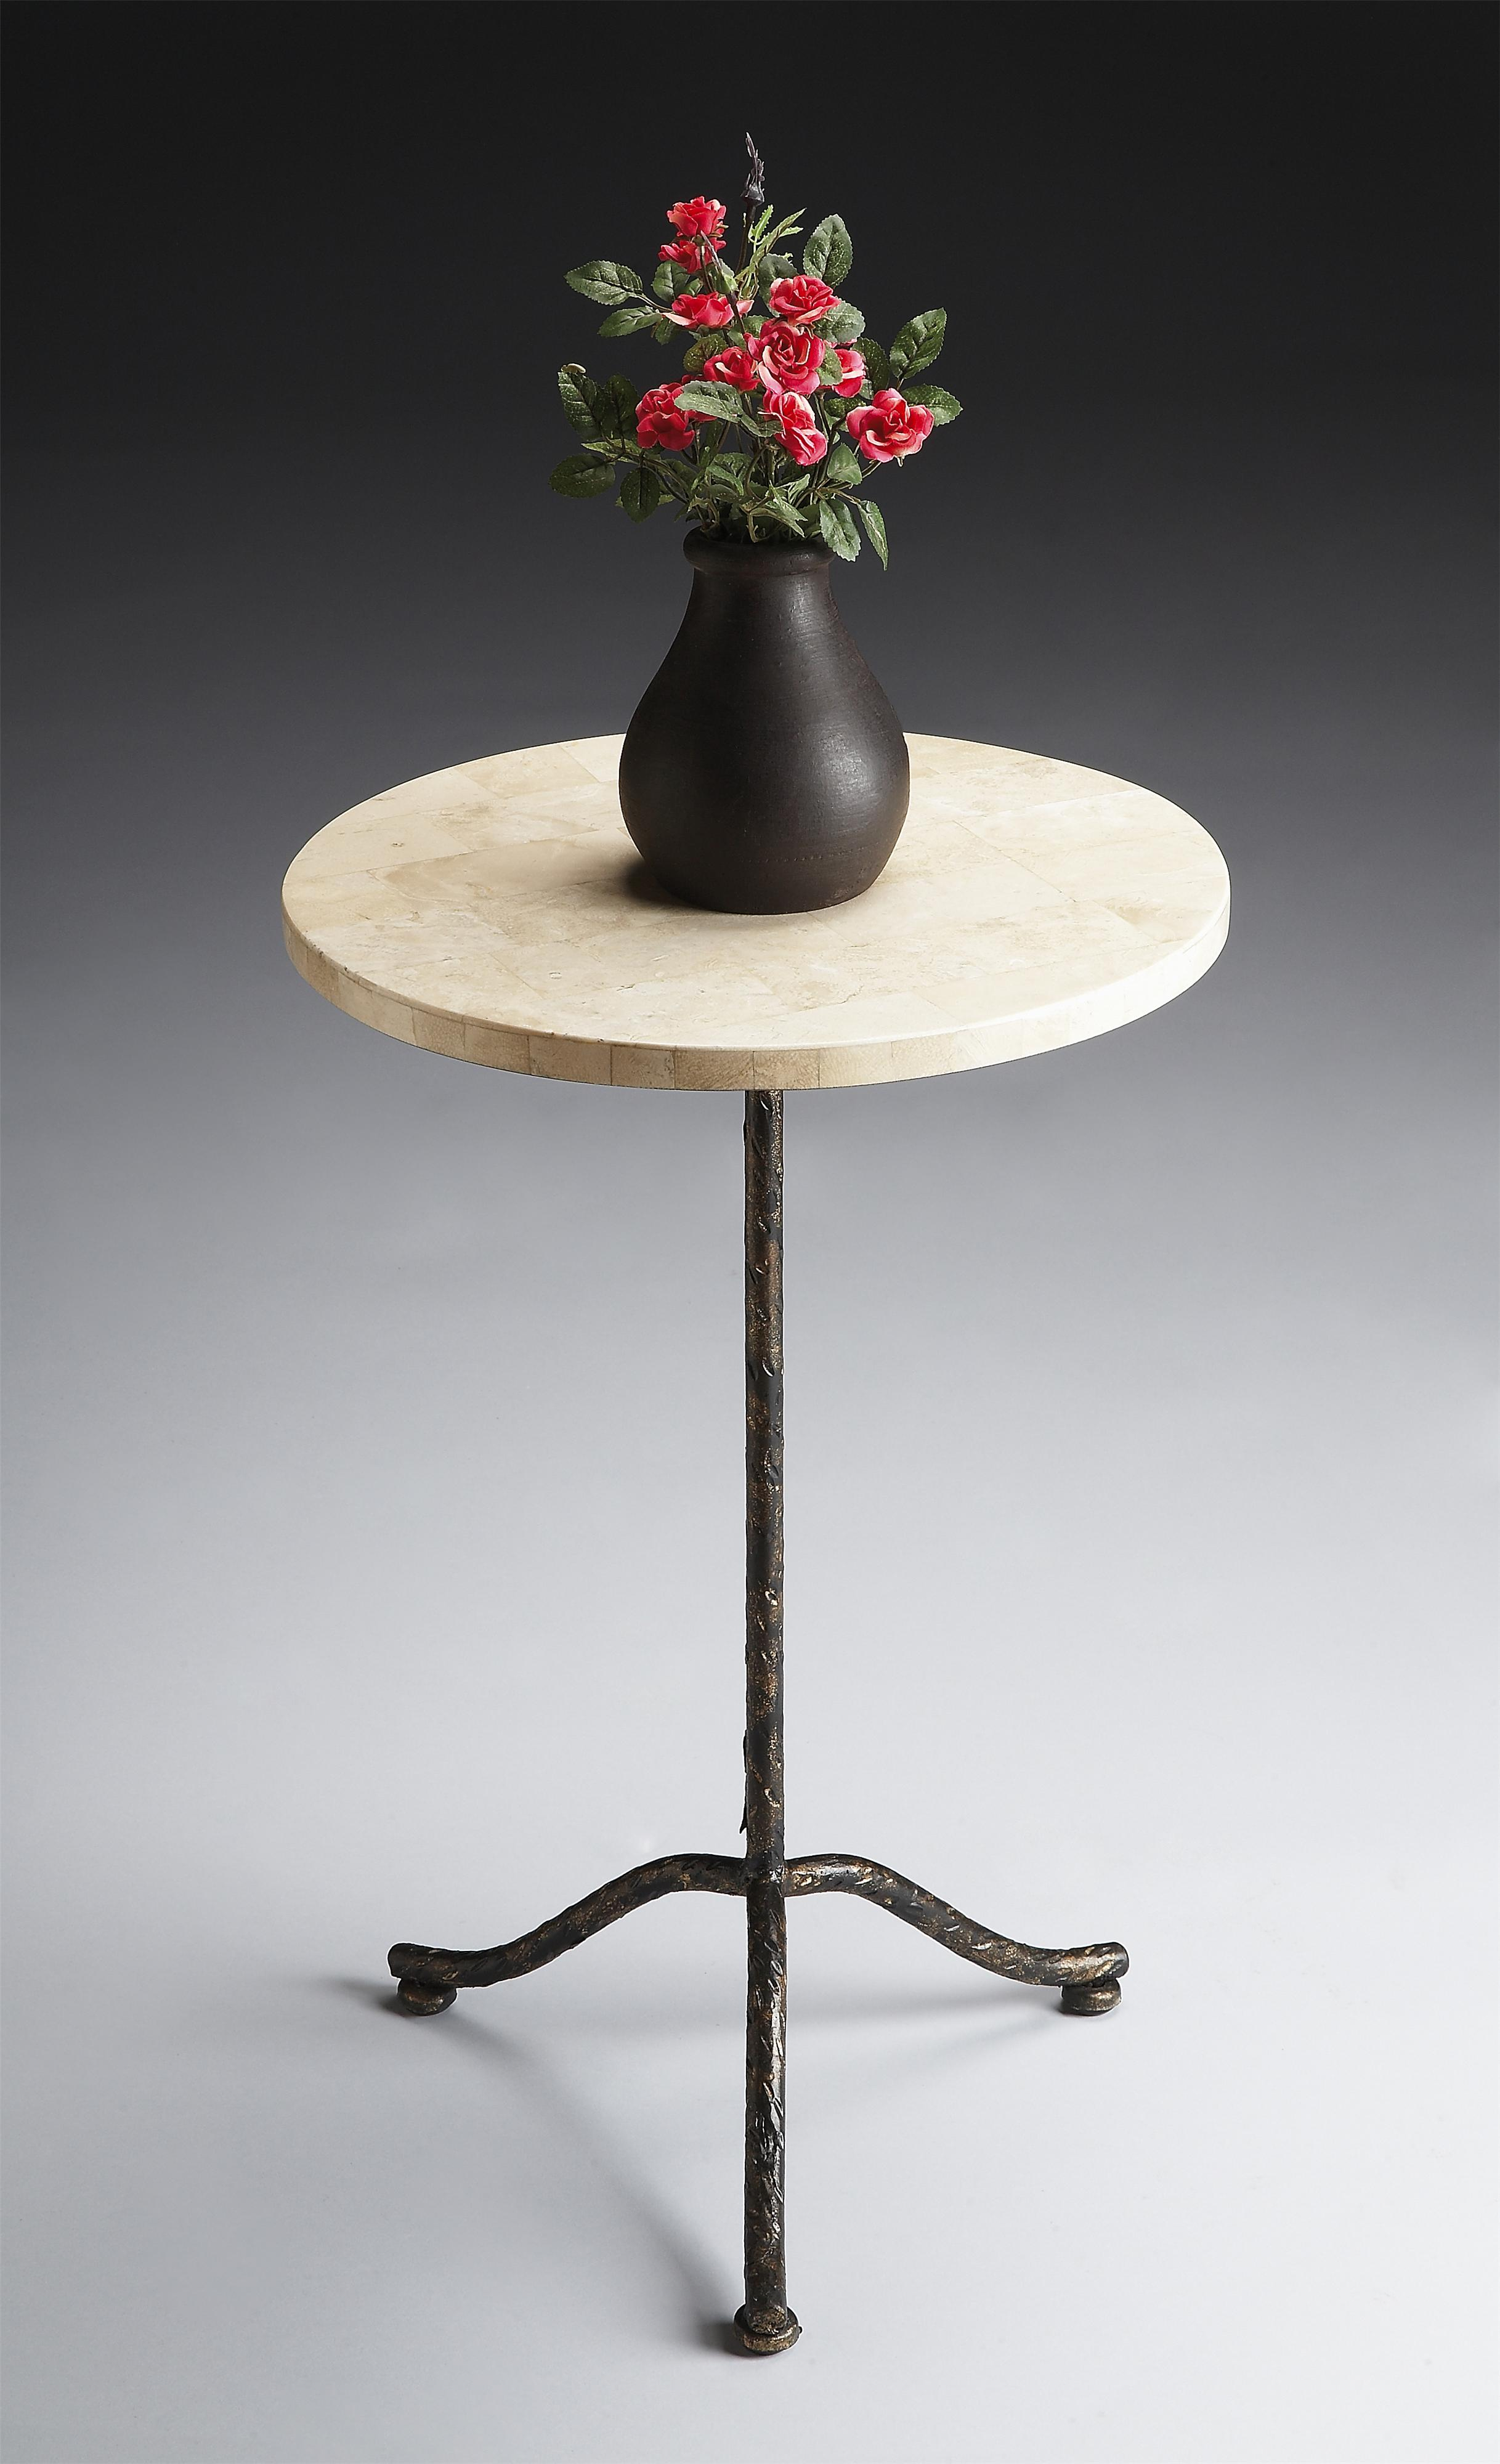 Butler Specialty Company Metalworks Pedestal Table - Item Number: 6068025